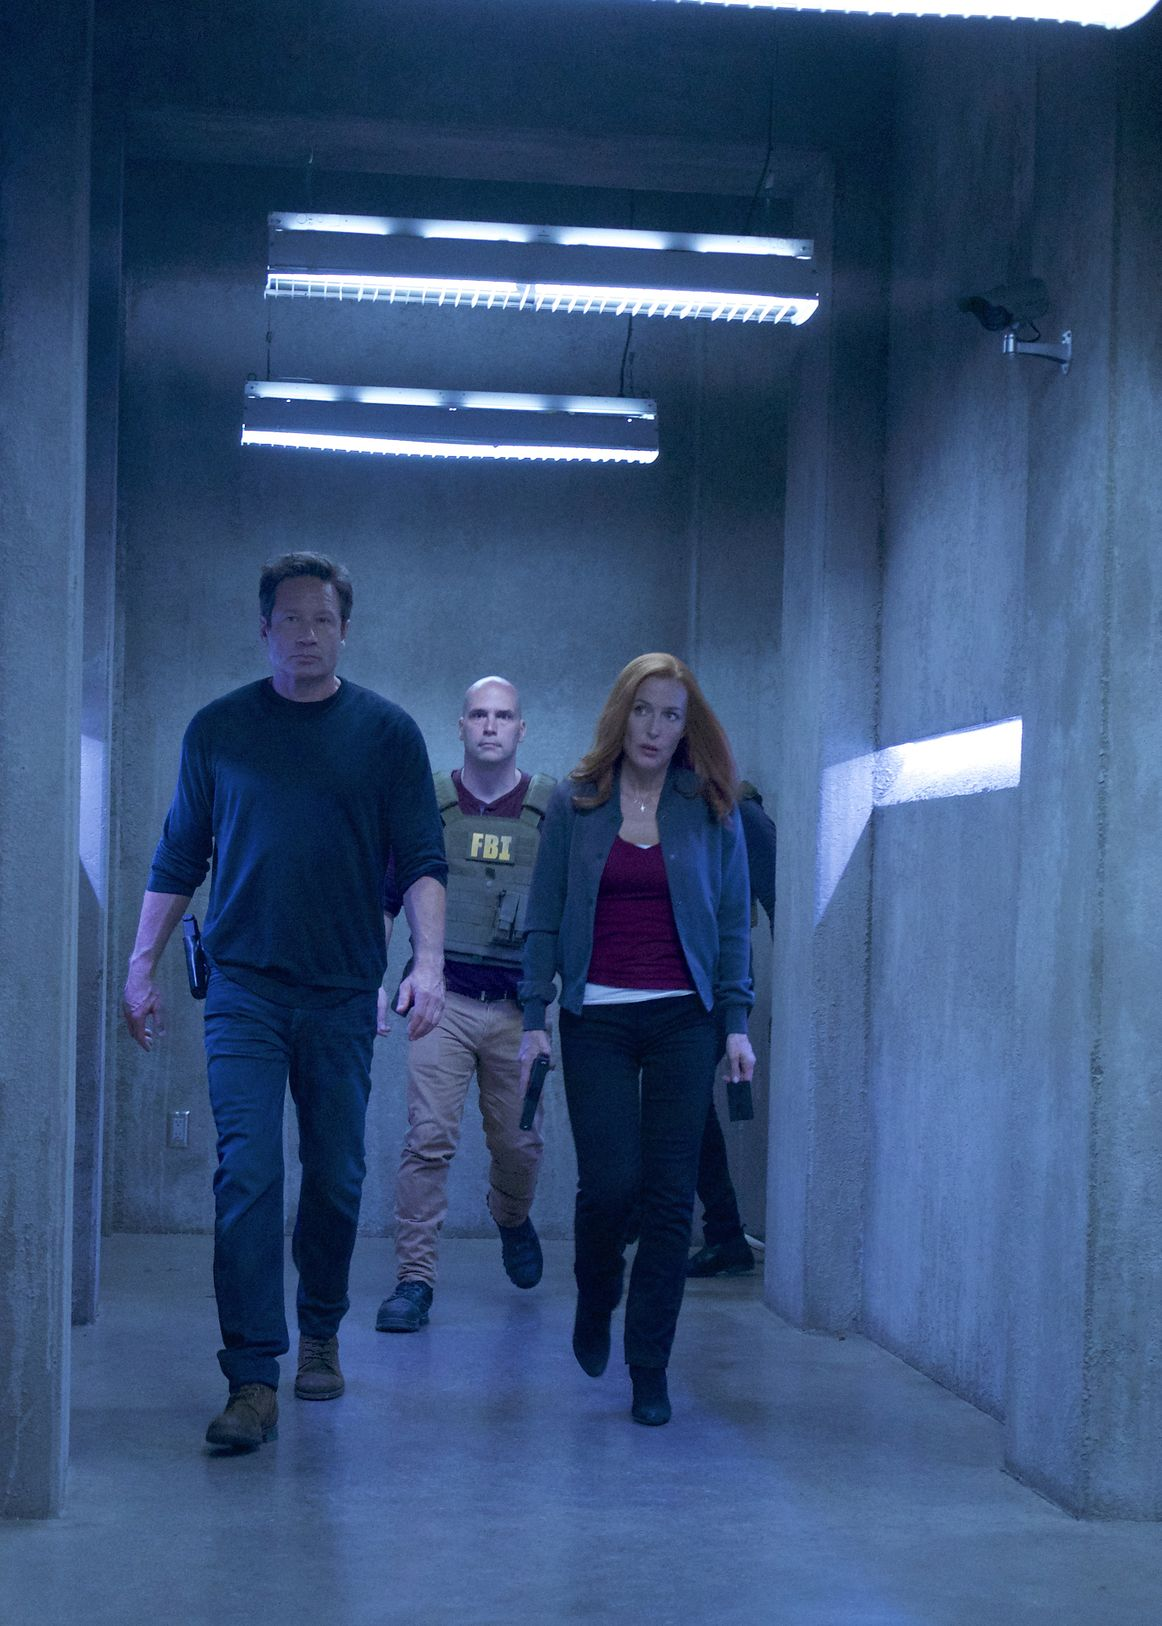 30-new-images-from-the-x-files-season-11-and-an-amusing-alien-prank-video20.jpeg